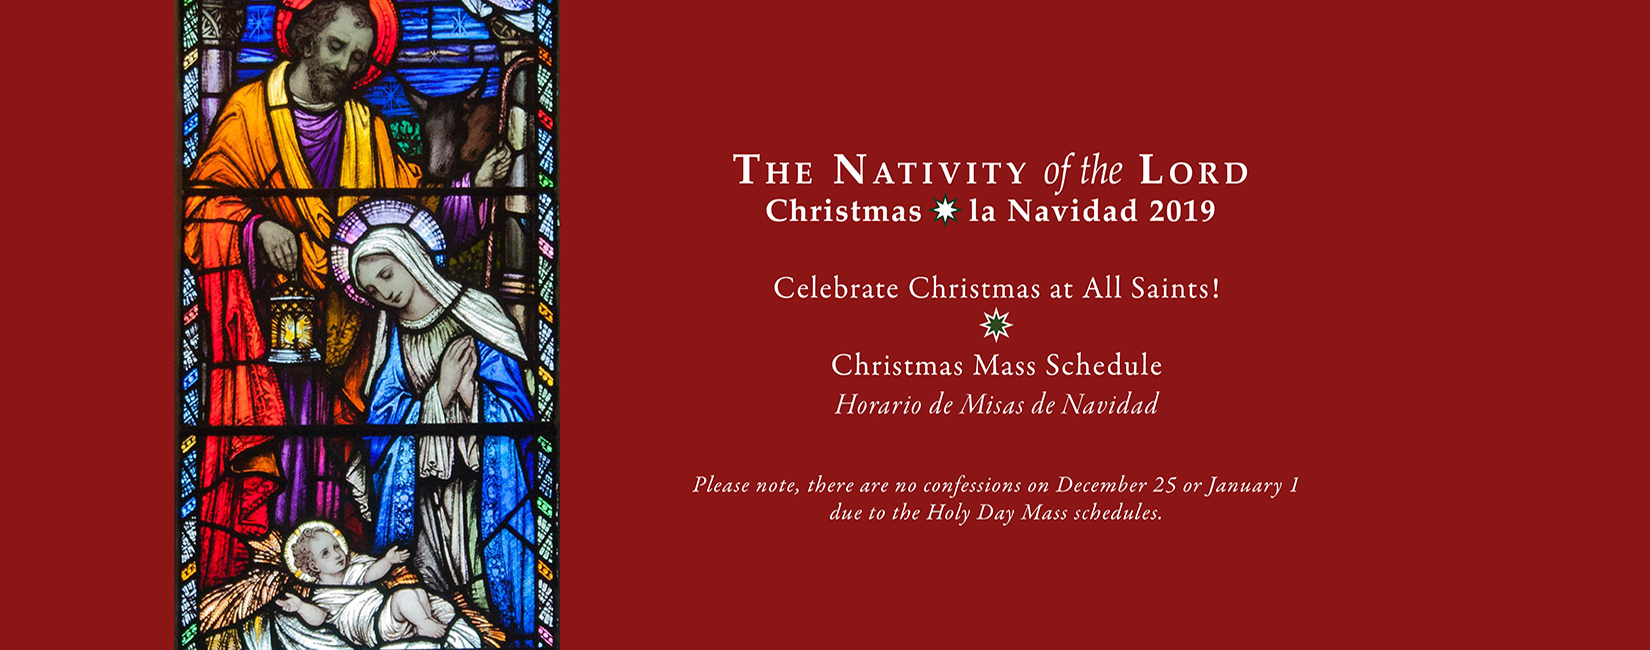 Christmas Mass Schedule - All Saints Catholic Church - Manassas, VA